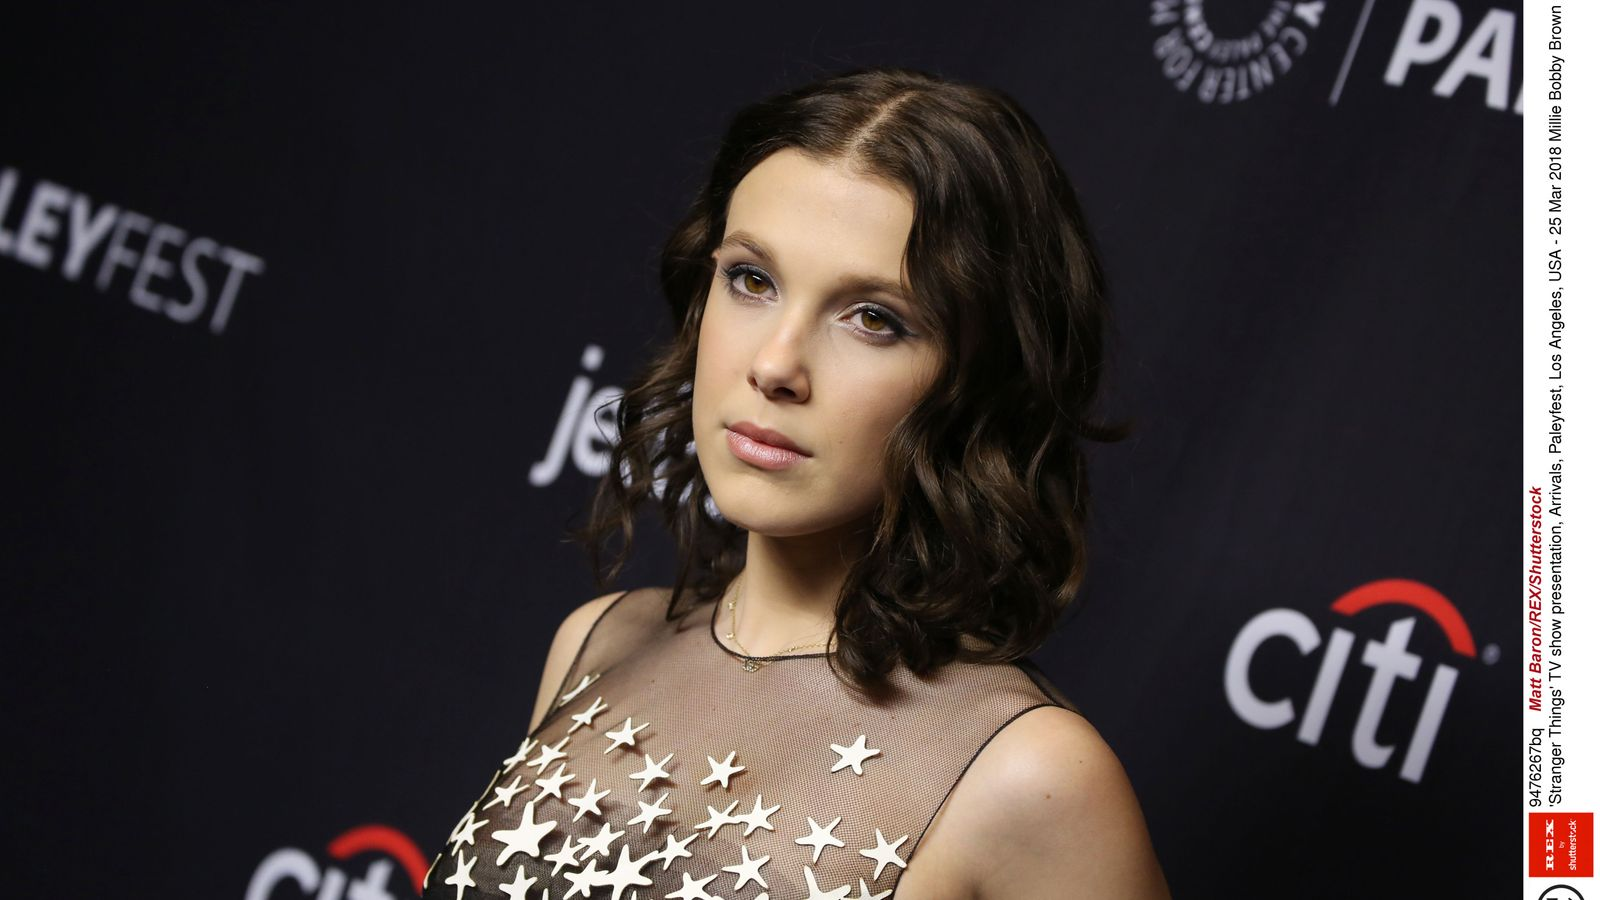 Millie Bobby Brown quits Twitter after anti-gay meme ...